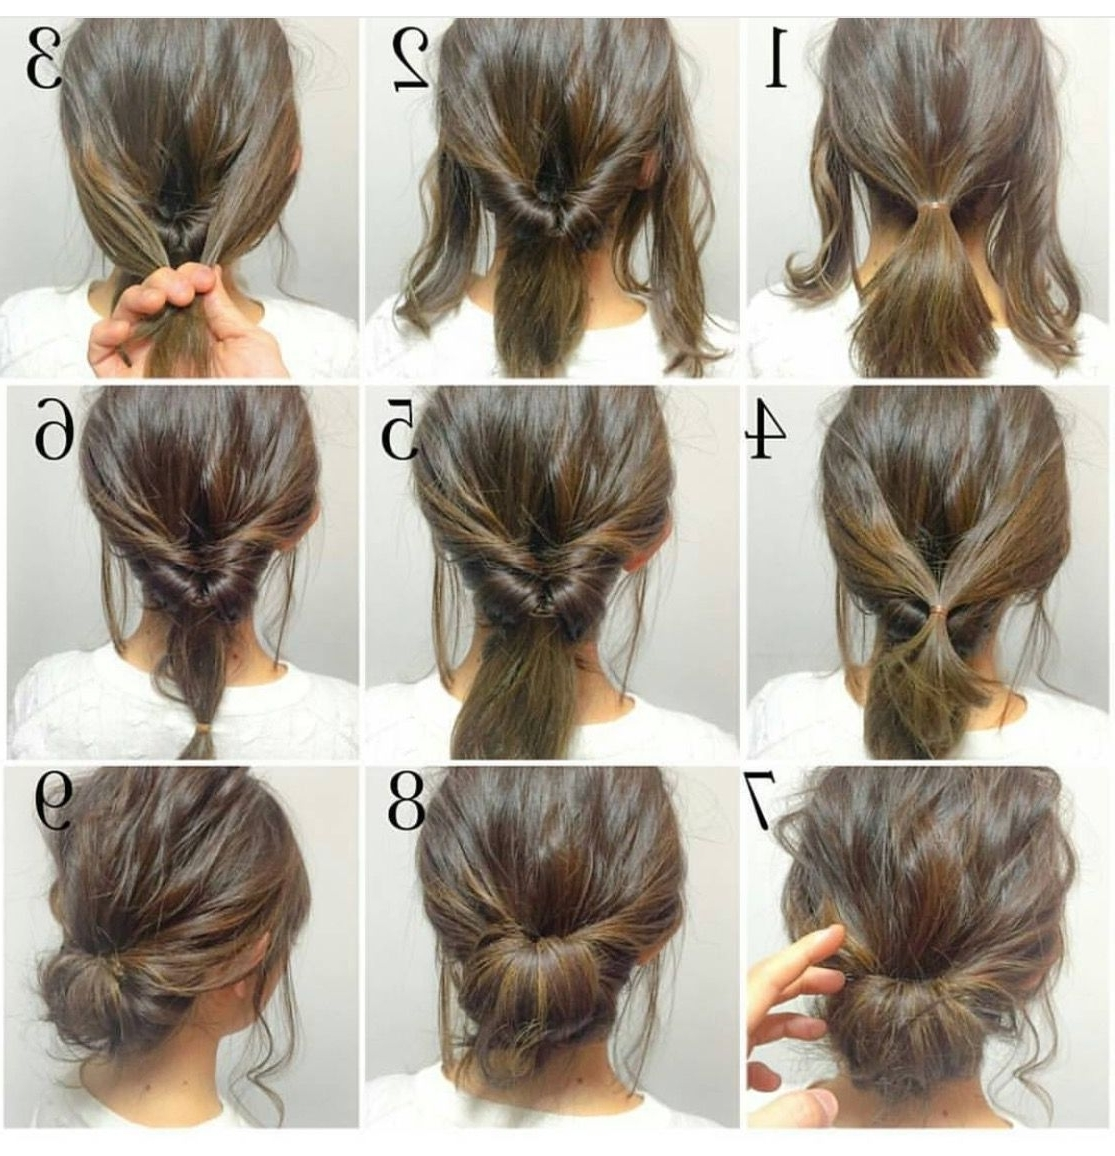 Photo Gallery Of Easy Updo Hairstyles For Medium Hair To Do Yourself